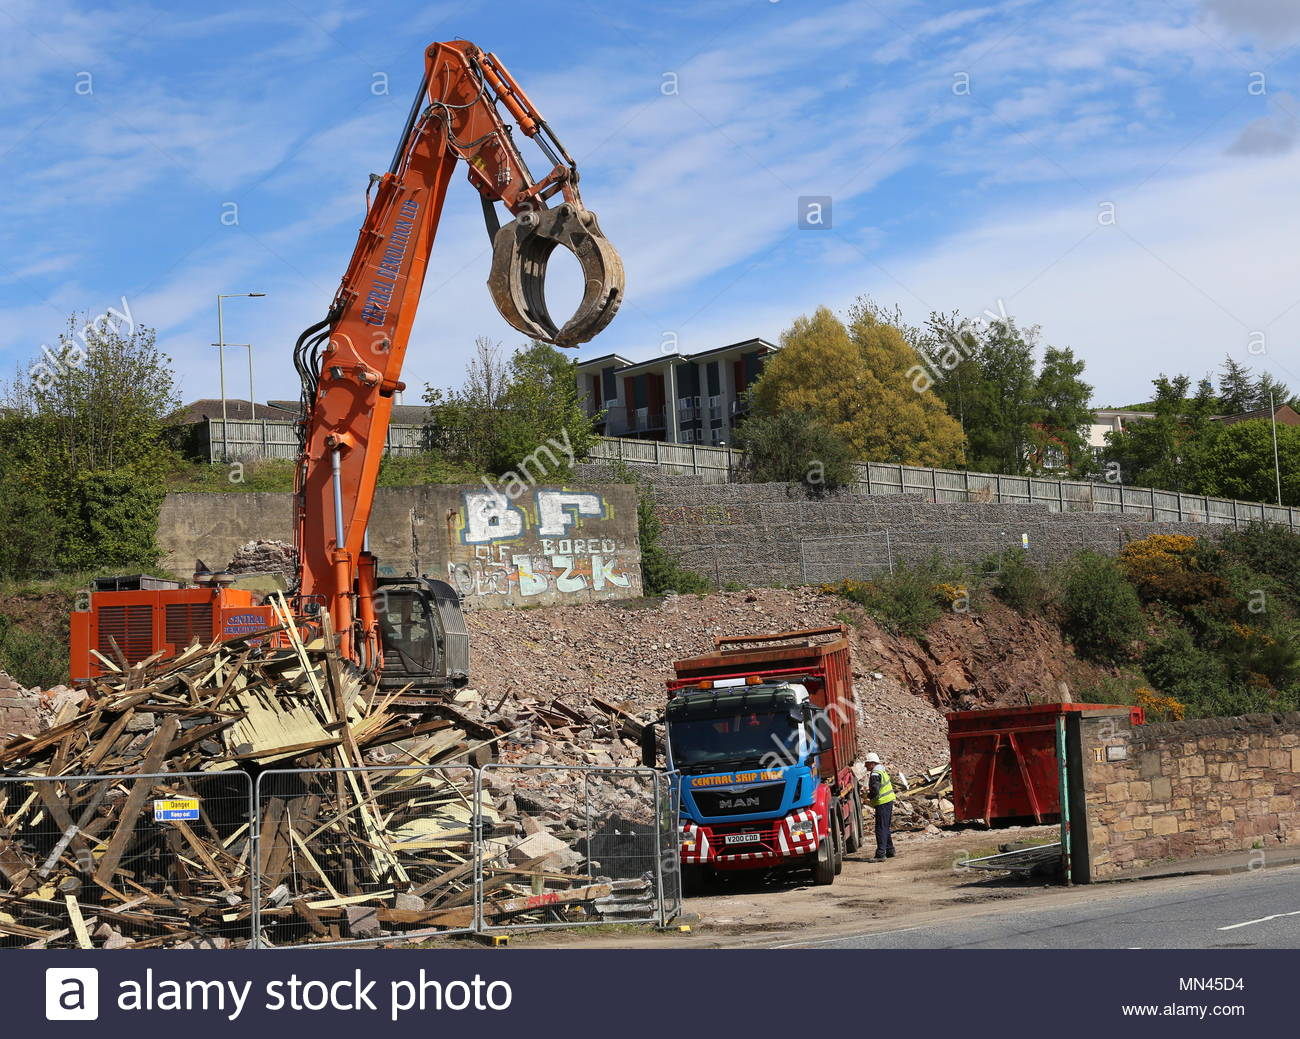 Dundee, UK. 14th May 2018. Demolition of William Halley & Sons' Wallace Craigie Works. The former flax and jute mill was built in 1834 and has been derelict for a number of years.  © Stephen Finn/Alamy Live News - Stock Image